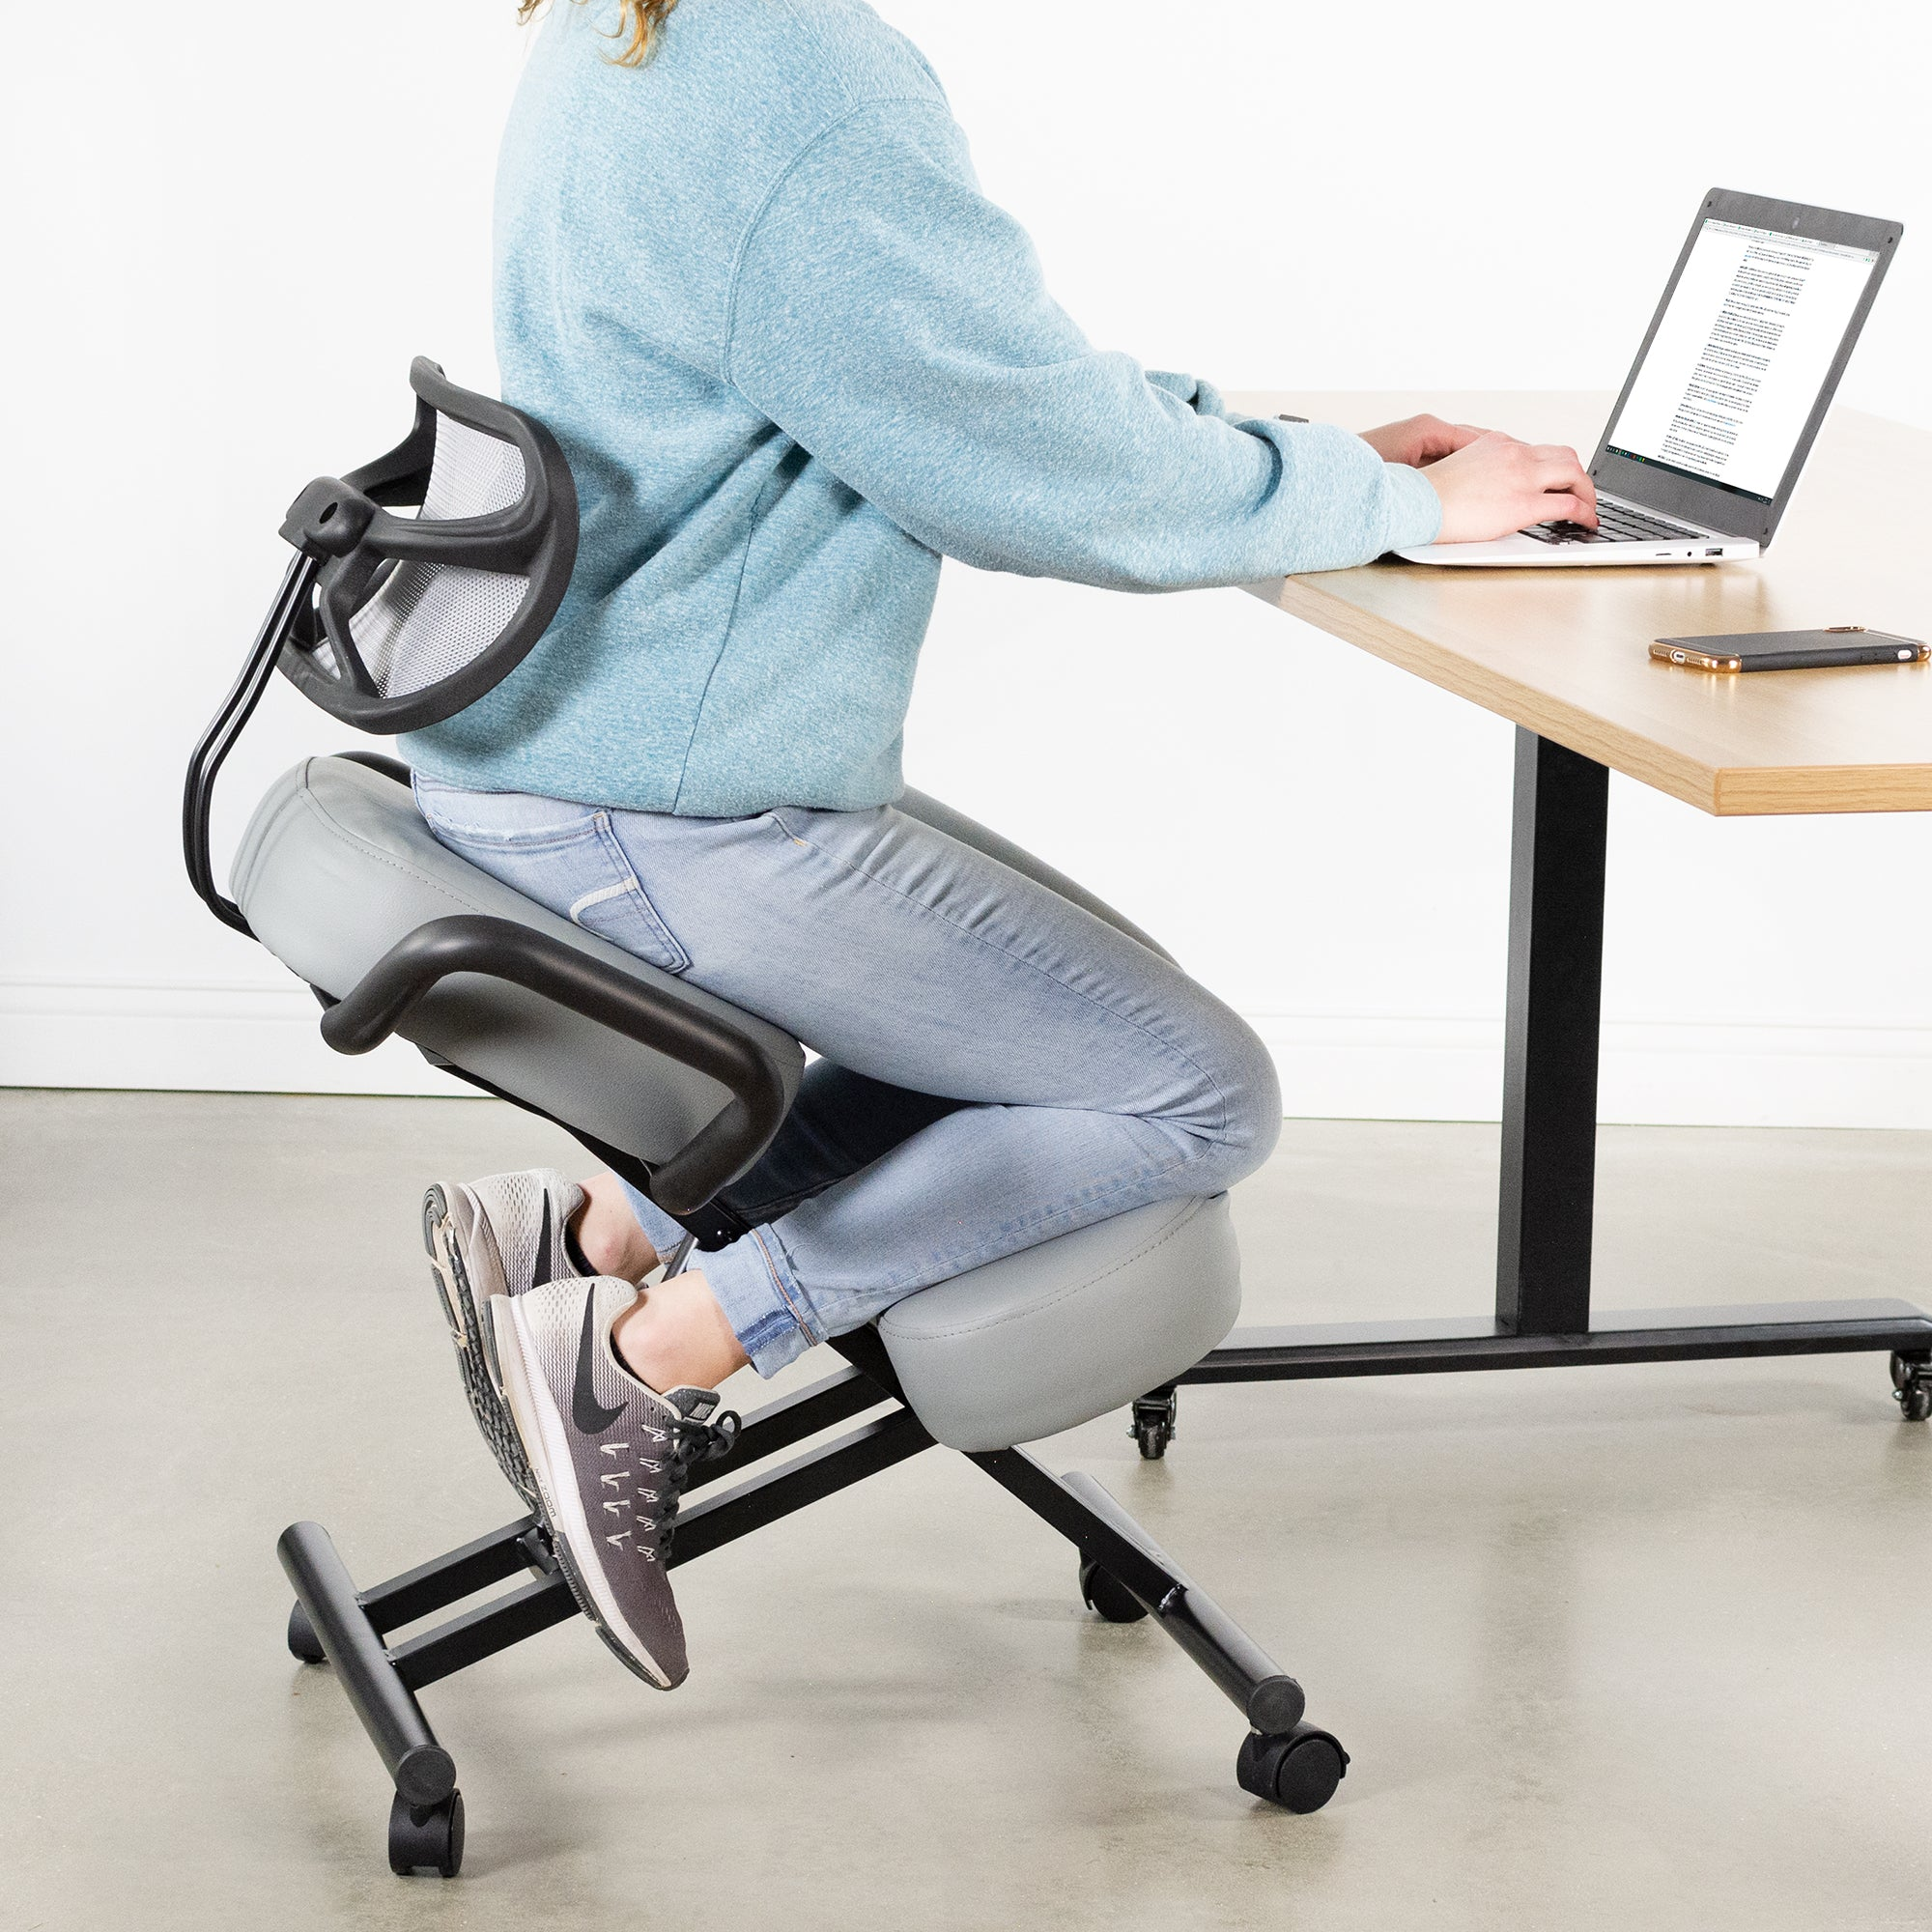 Gray Adjustable Ergonomic Kneeling Chair with Back Support